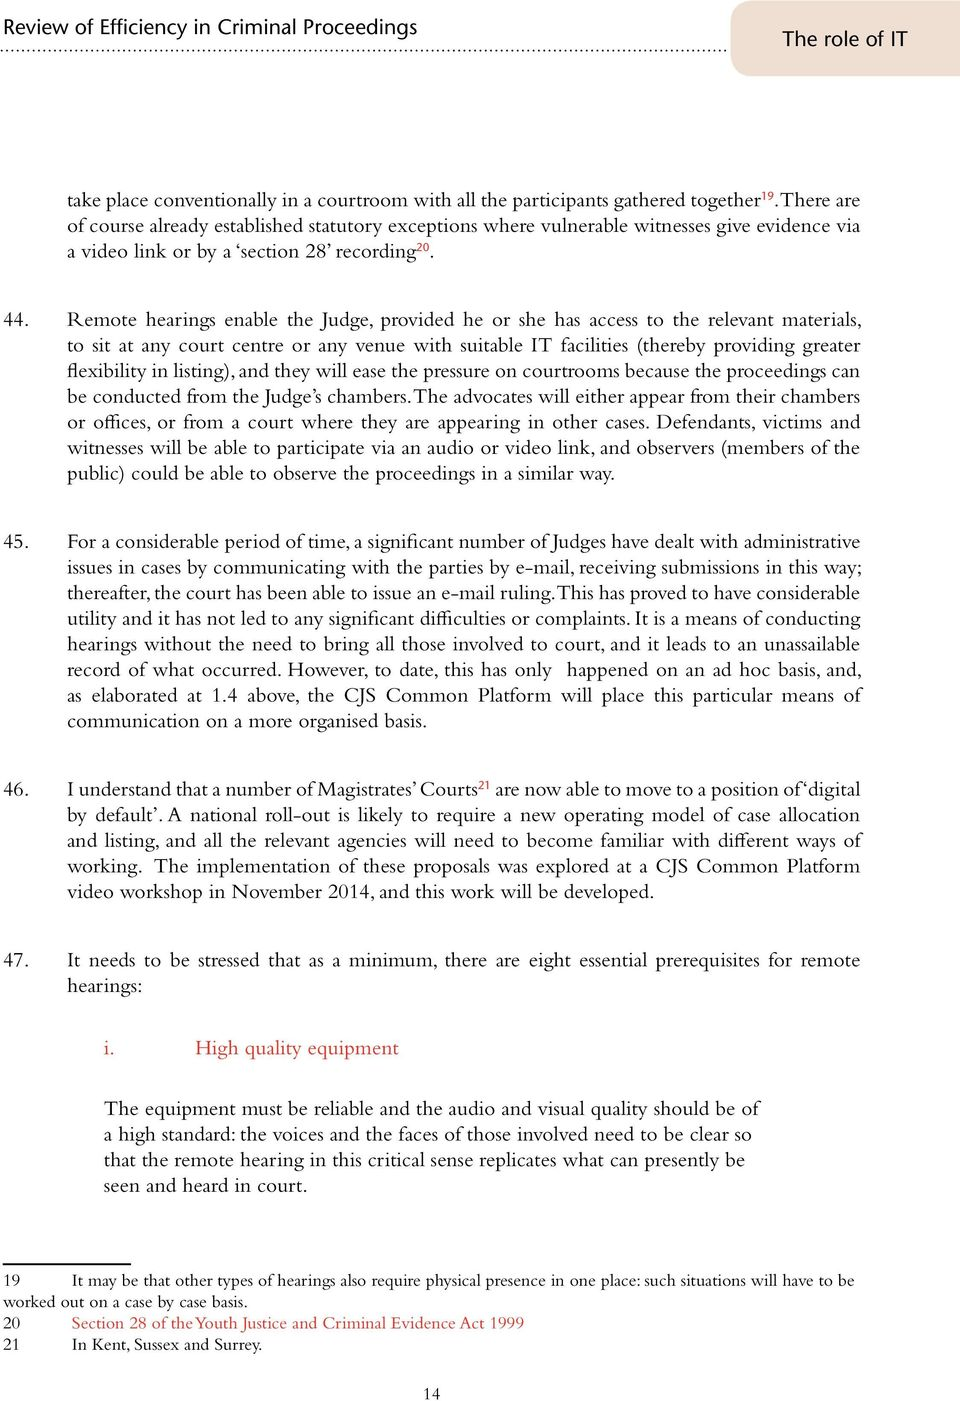 Remote hearings enable the Judge, provided he or she has access to the relevant materials, to sit at any court centre or any venue with suitable IT facilities (thereby providing greater flexibility